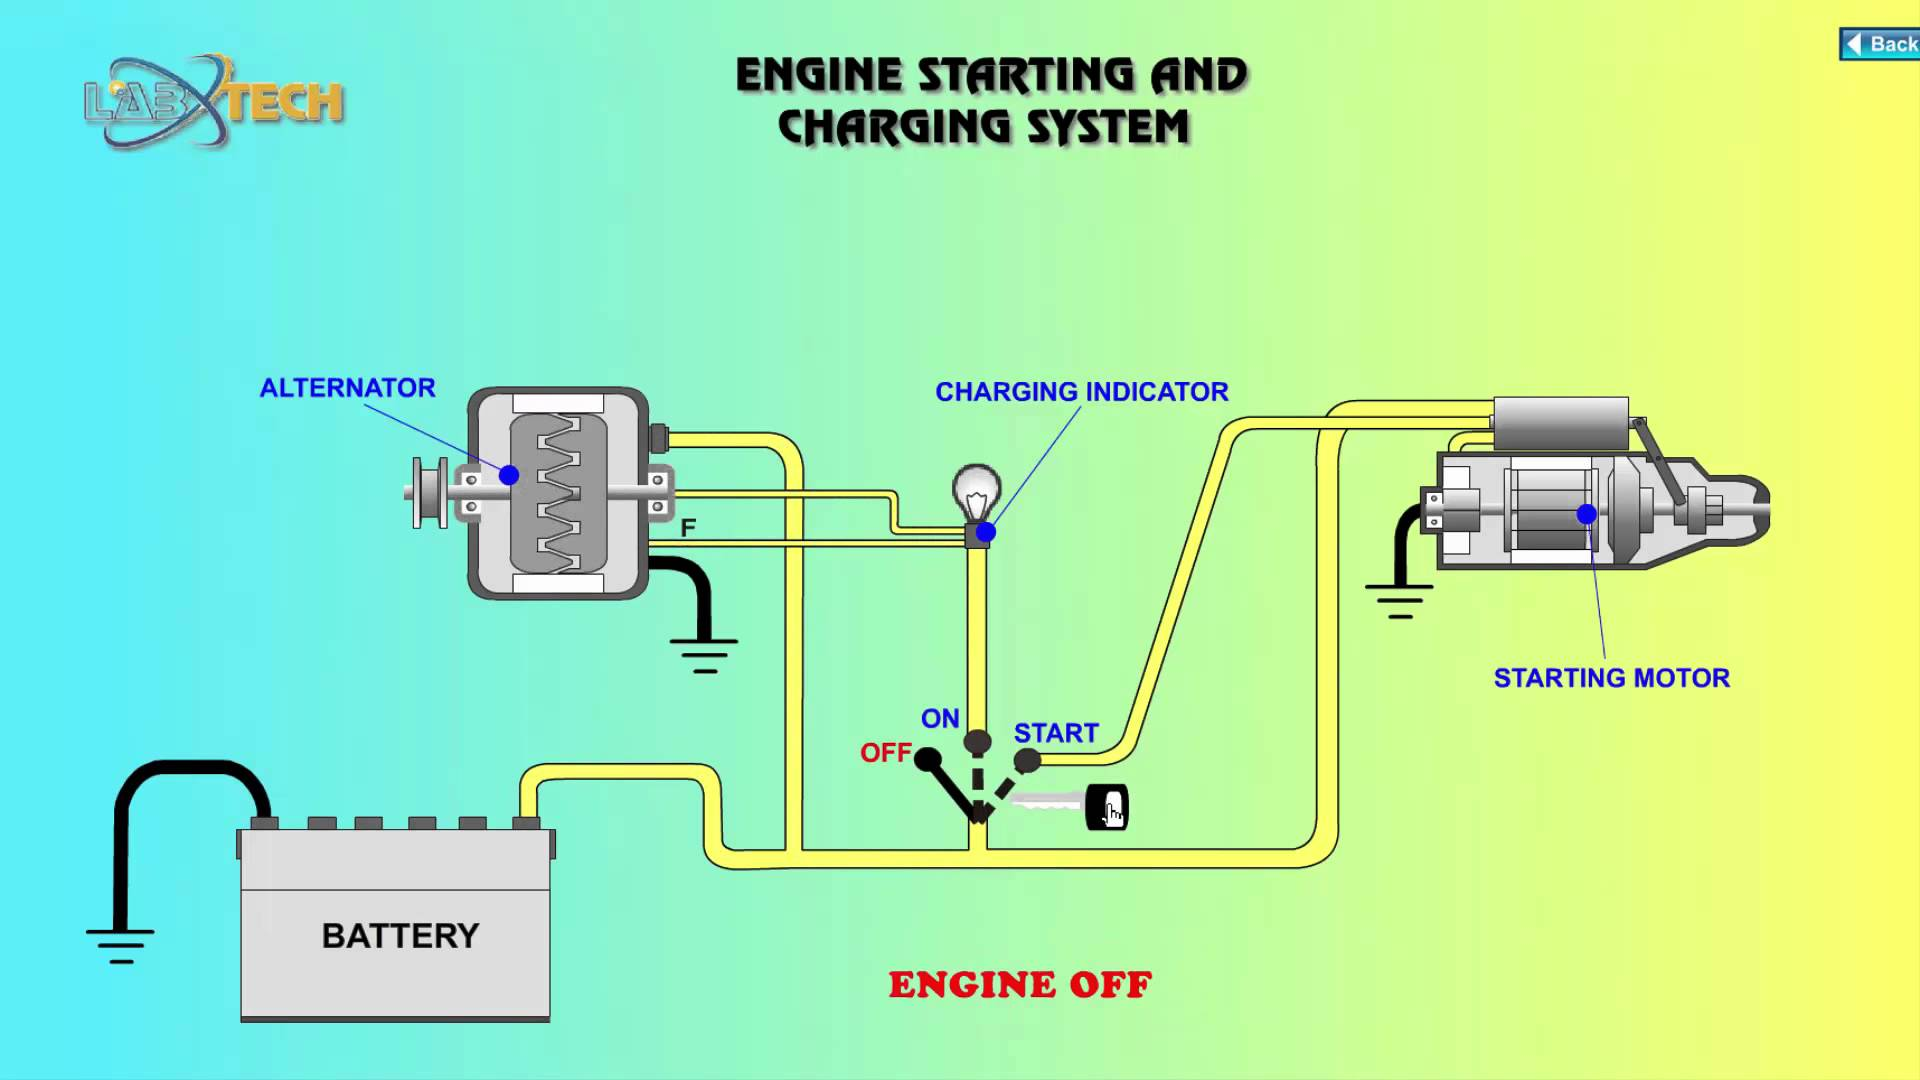 auto charging system wiring diagram 2001 ford super duty free for you engine starting and video cars diy howto blog rh buyanycarparts com automotive